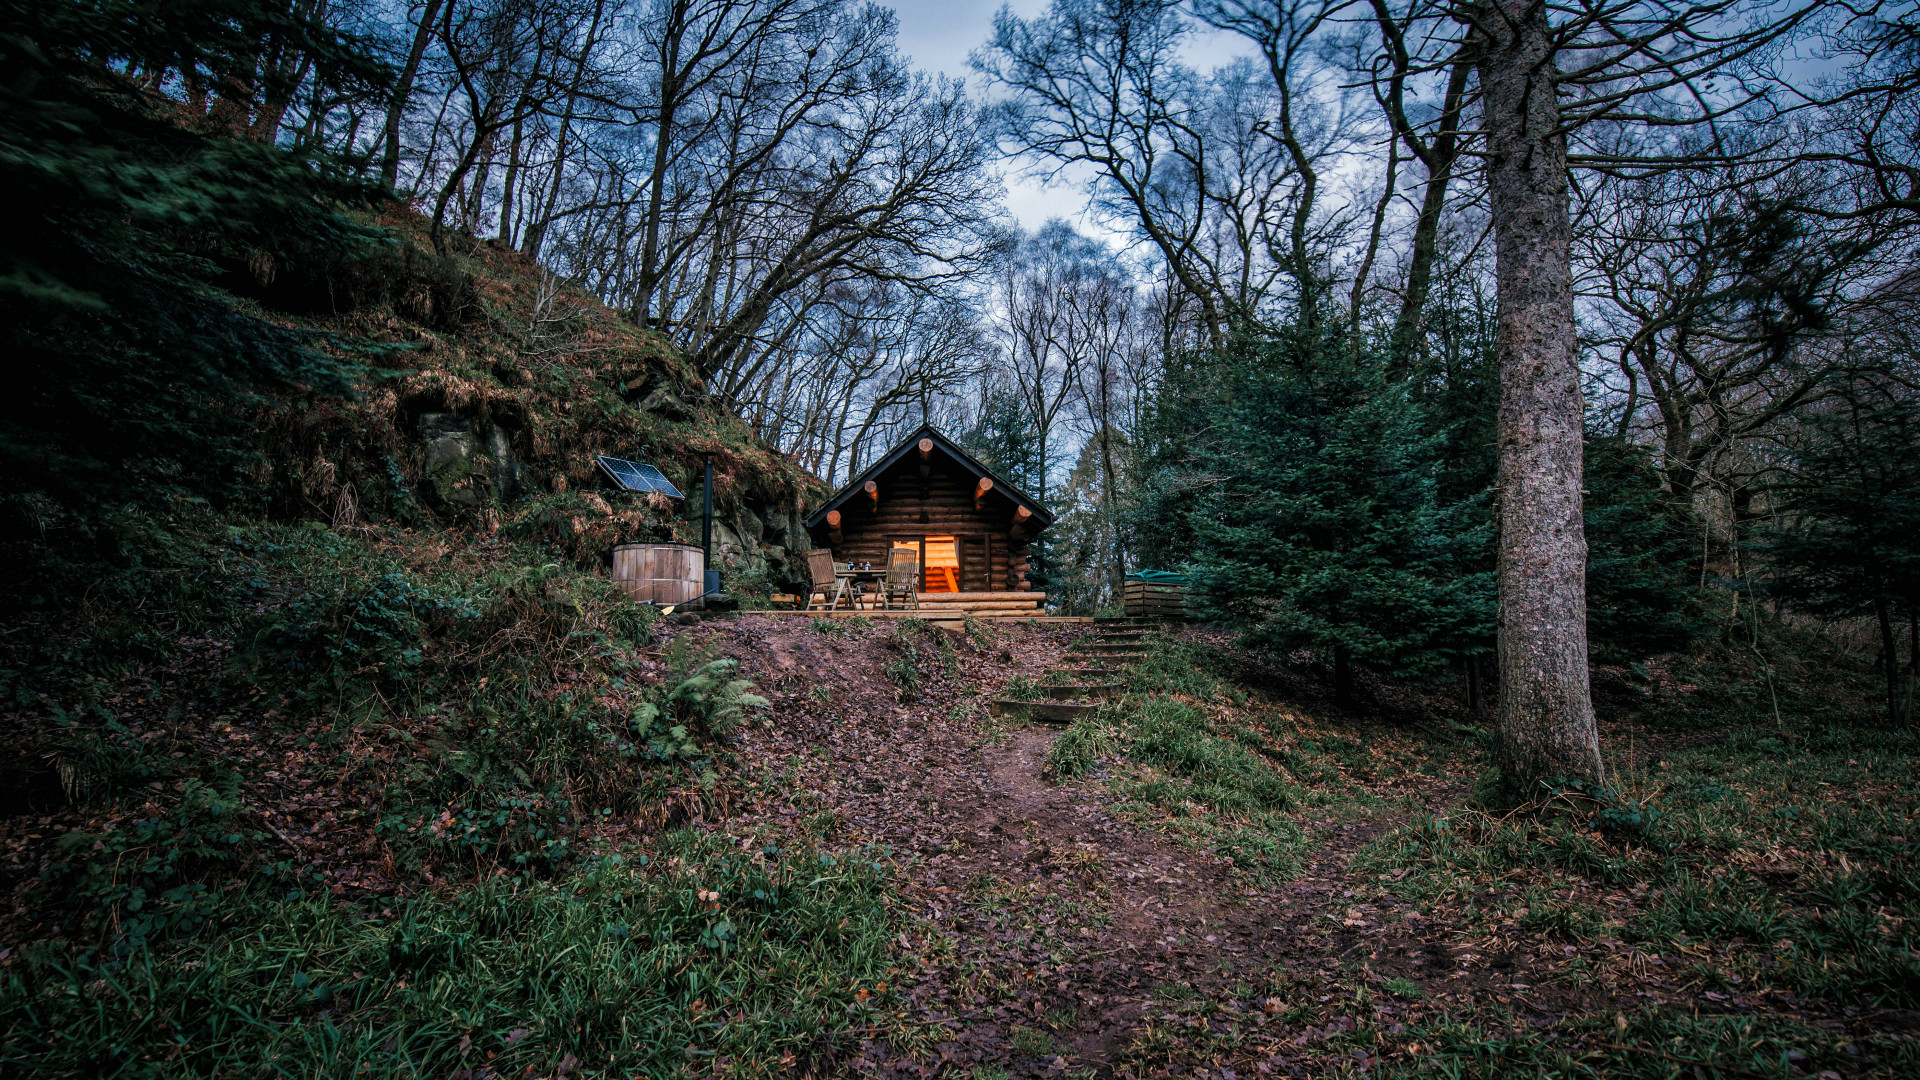 Best self-catering in the UK: Wood Cabin, Lake District